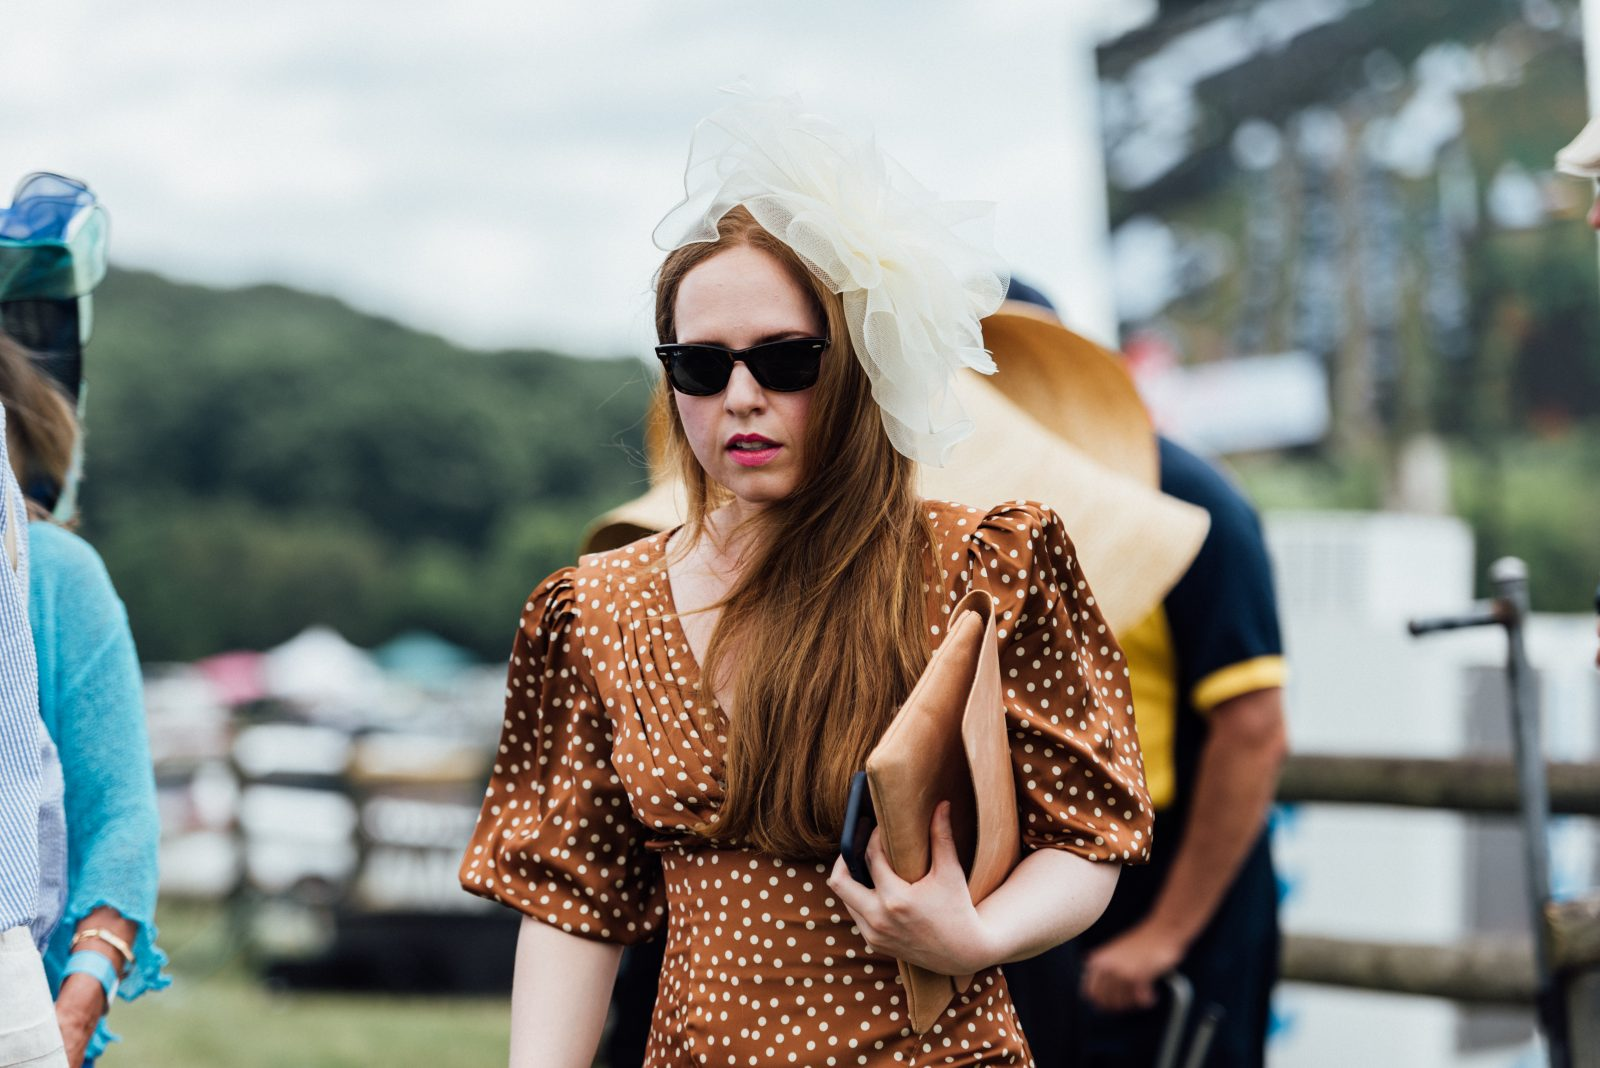 Women in bronze dress with white polka dots at TN Steeplechase 21